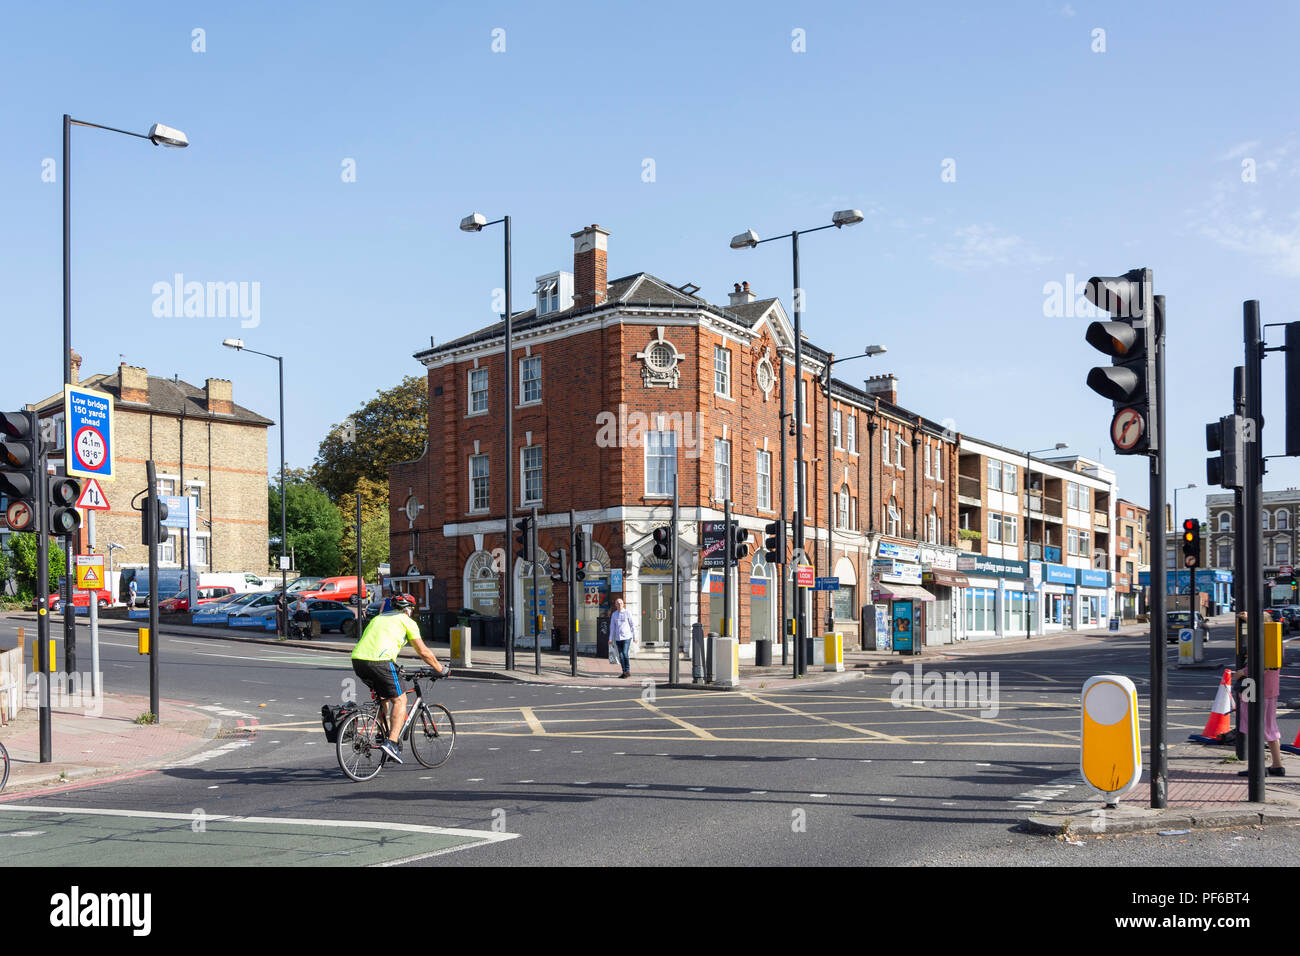 Junction of South Circular Road and Norwood Road, Tulse Hill, London Borough of Lambeth, Greater London, England, United Kingdom - Stock Image